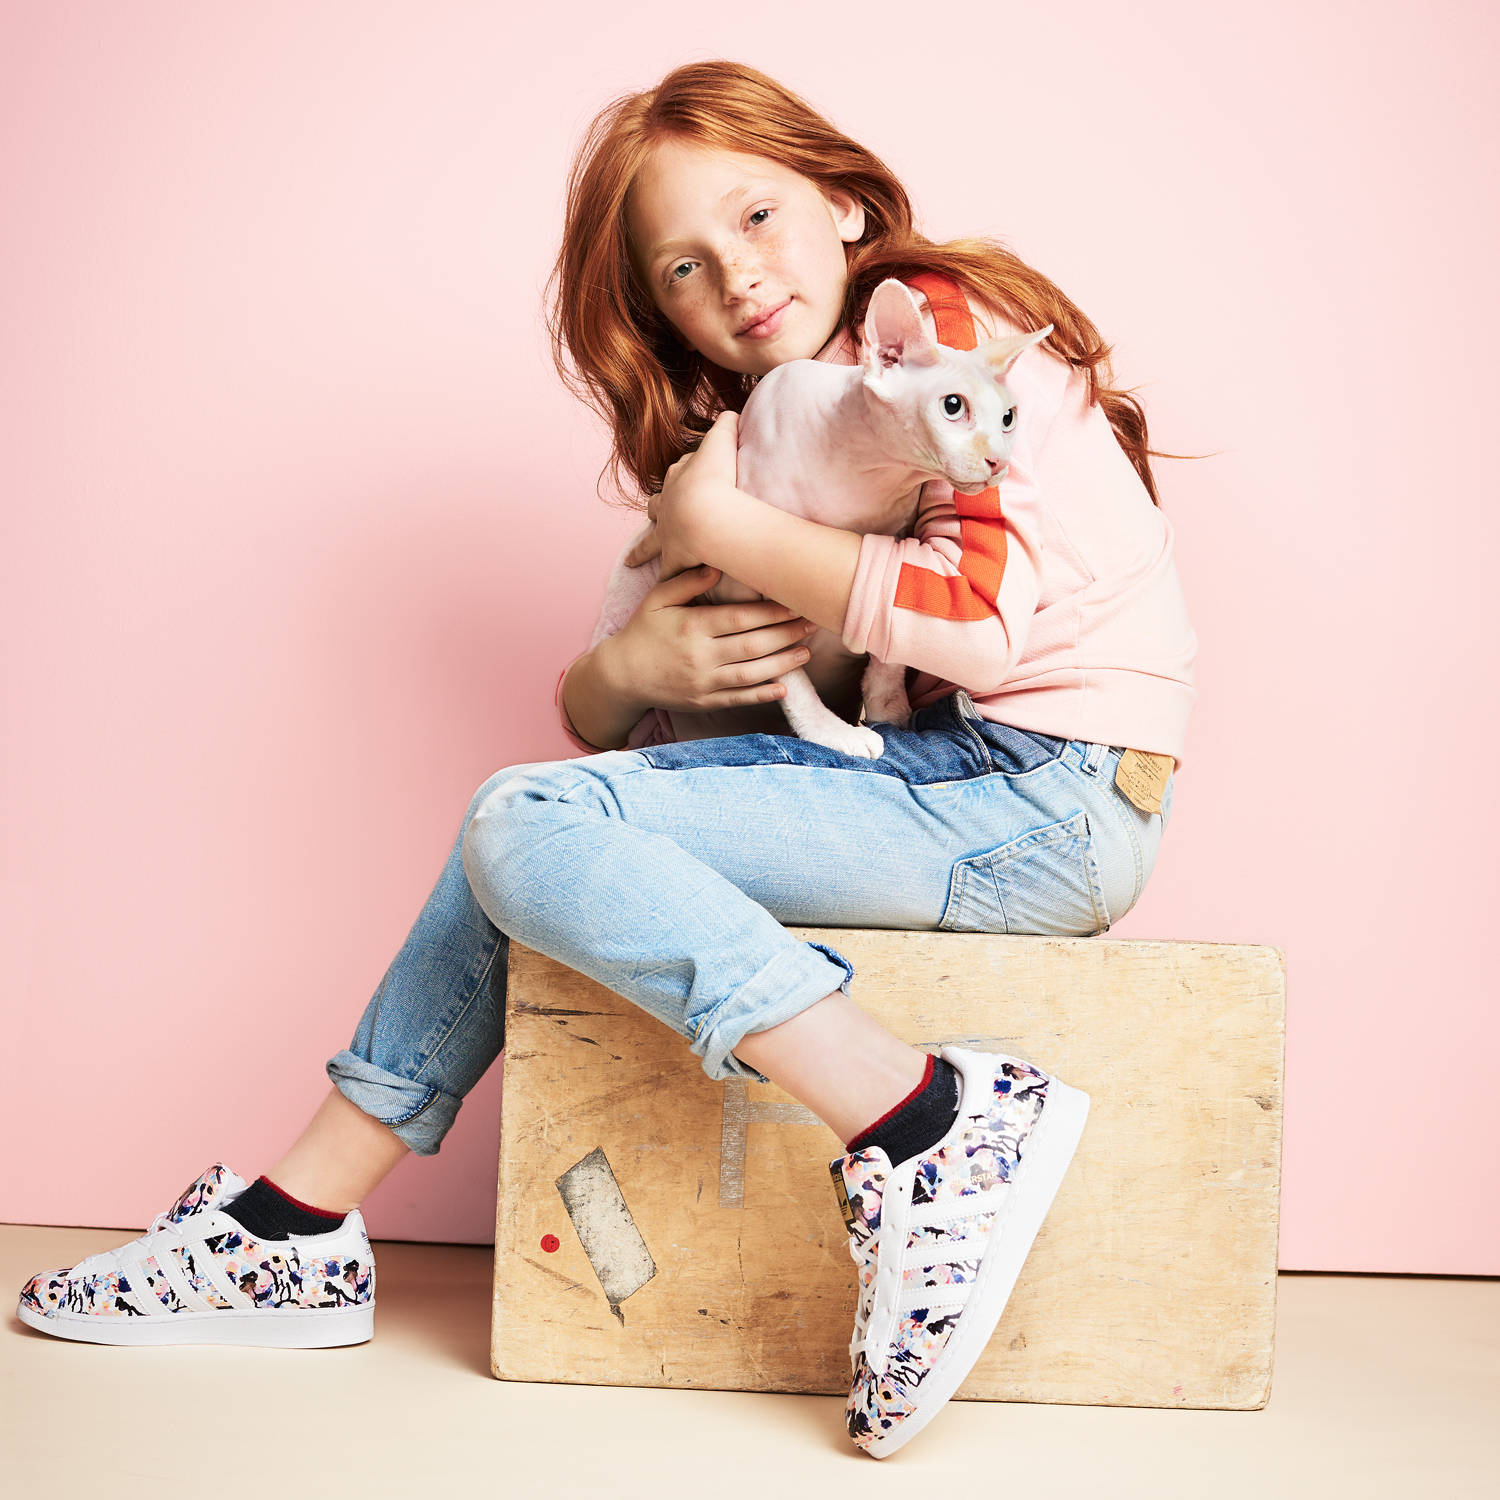 red-haired girl sitting and holding her sphynx cat